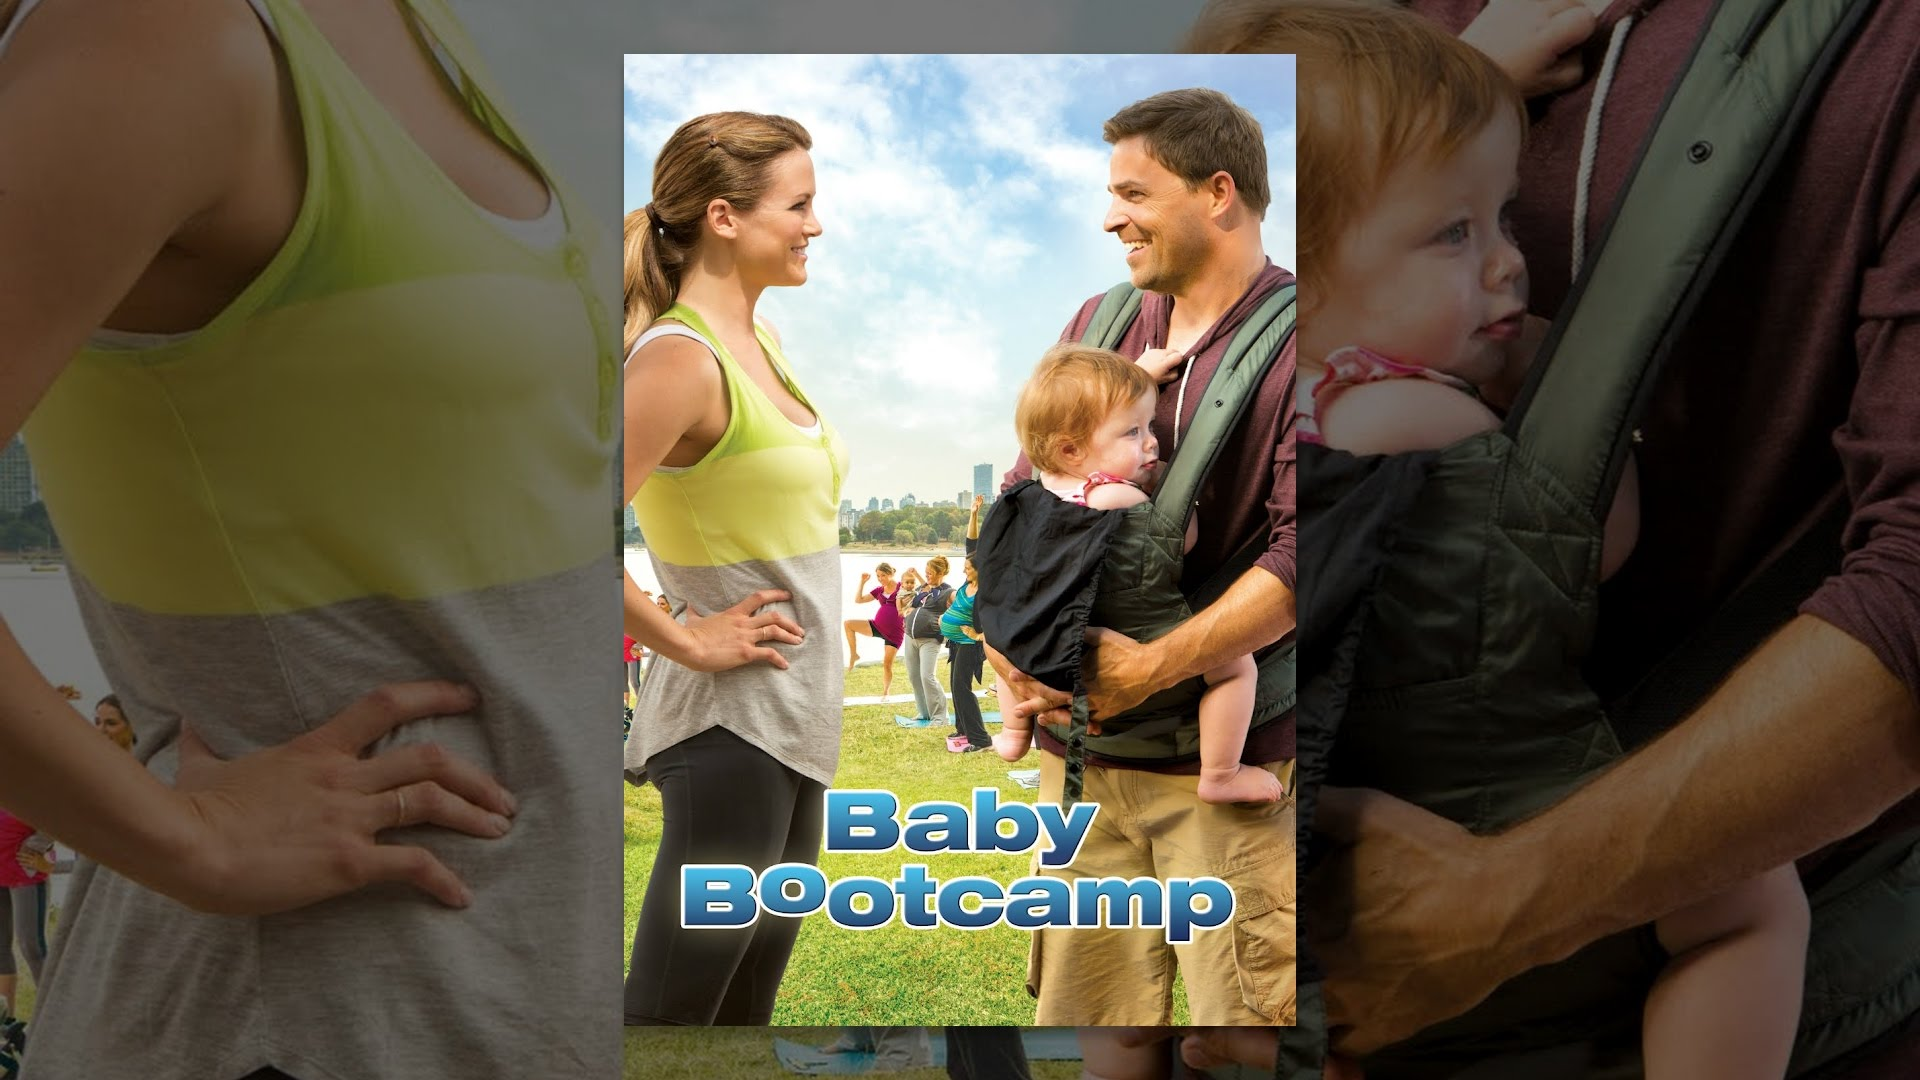 Baby Boot Camp - YouTube